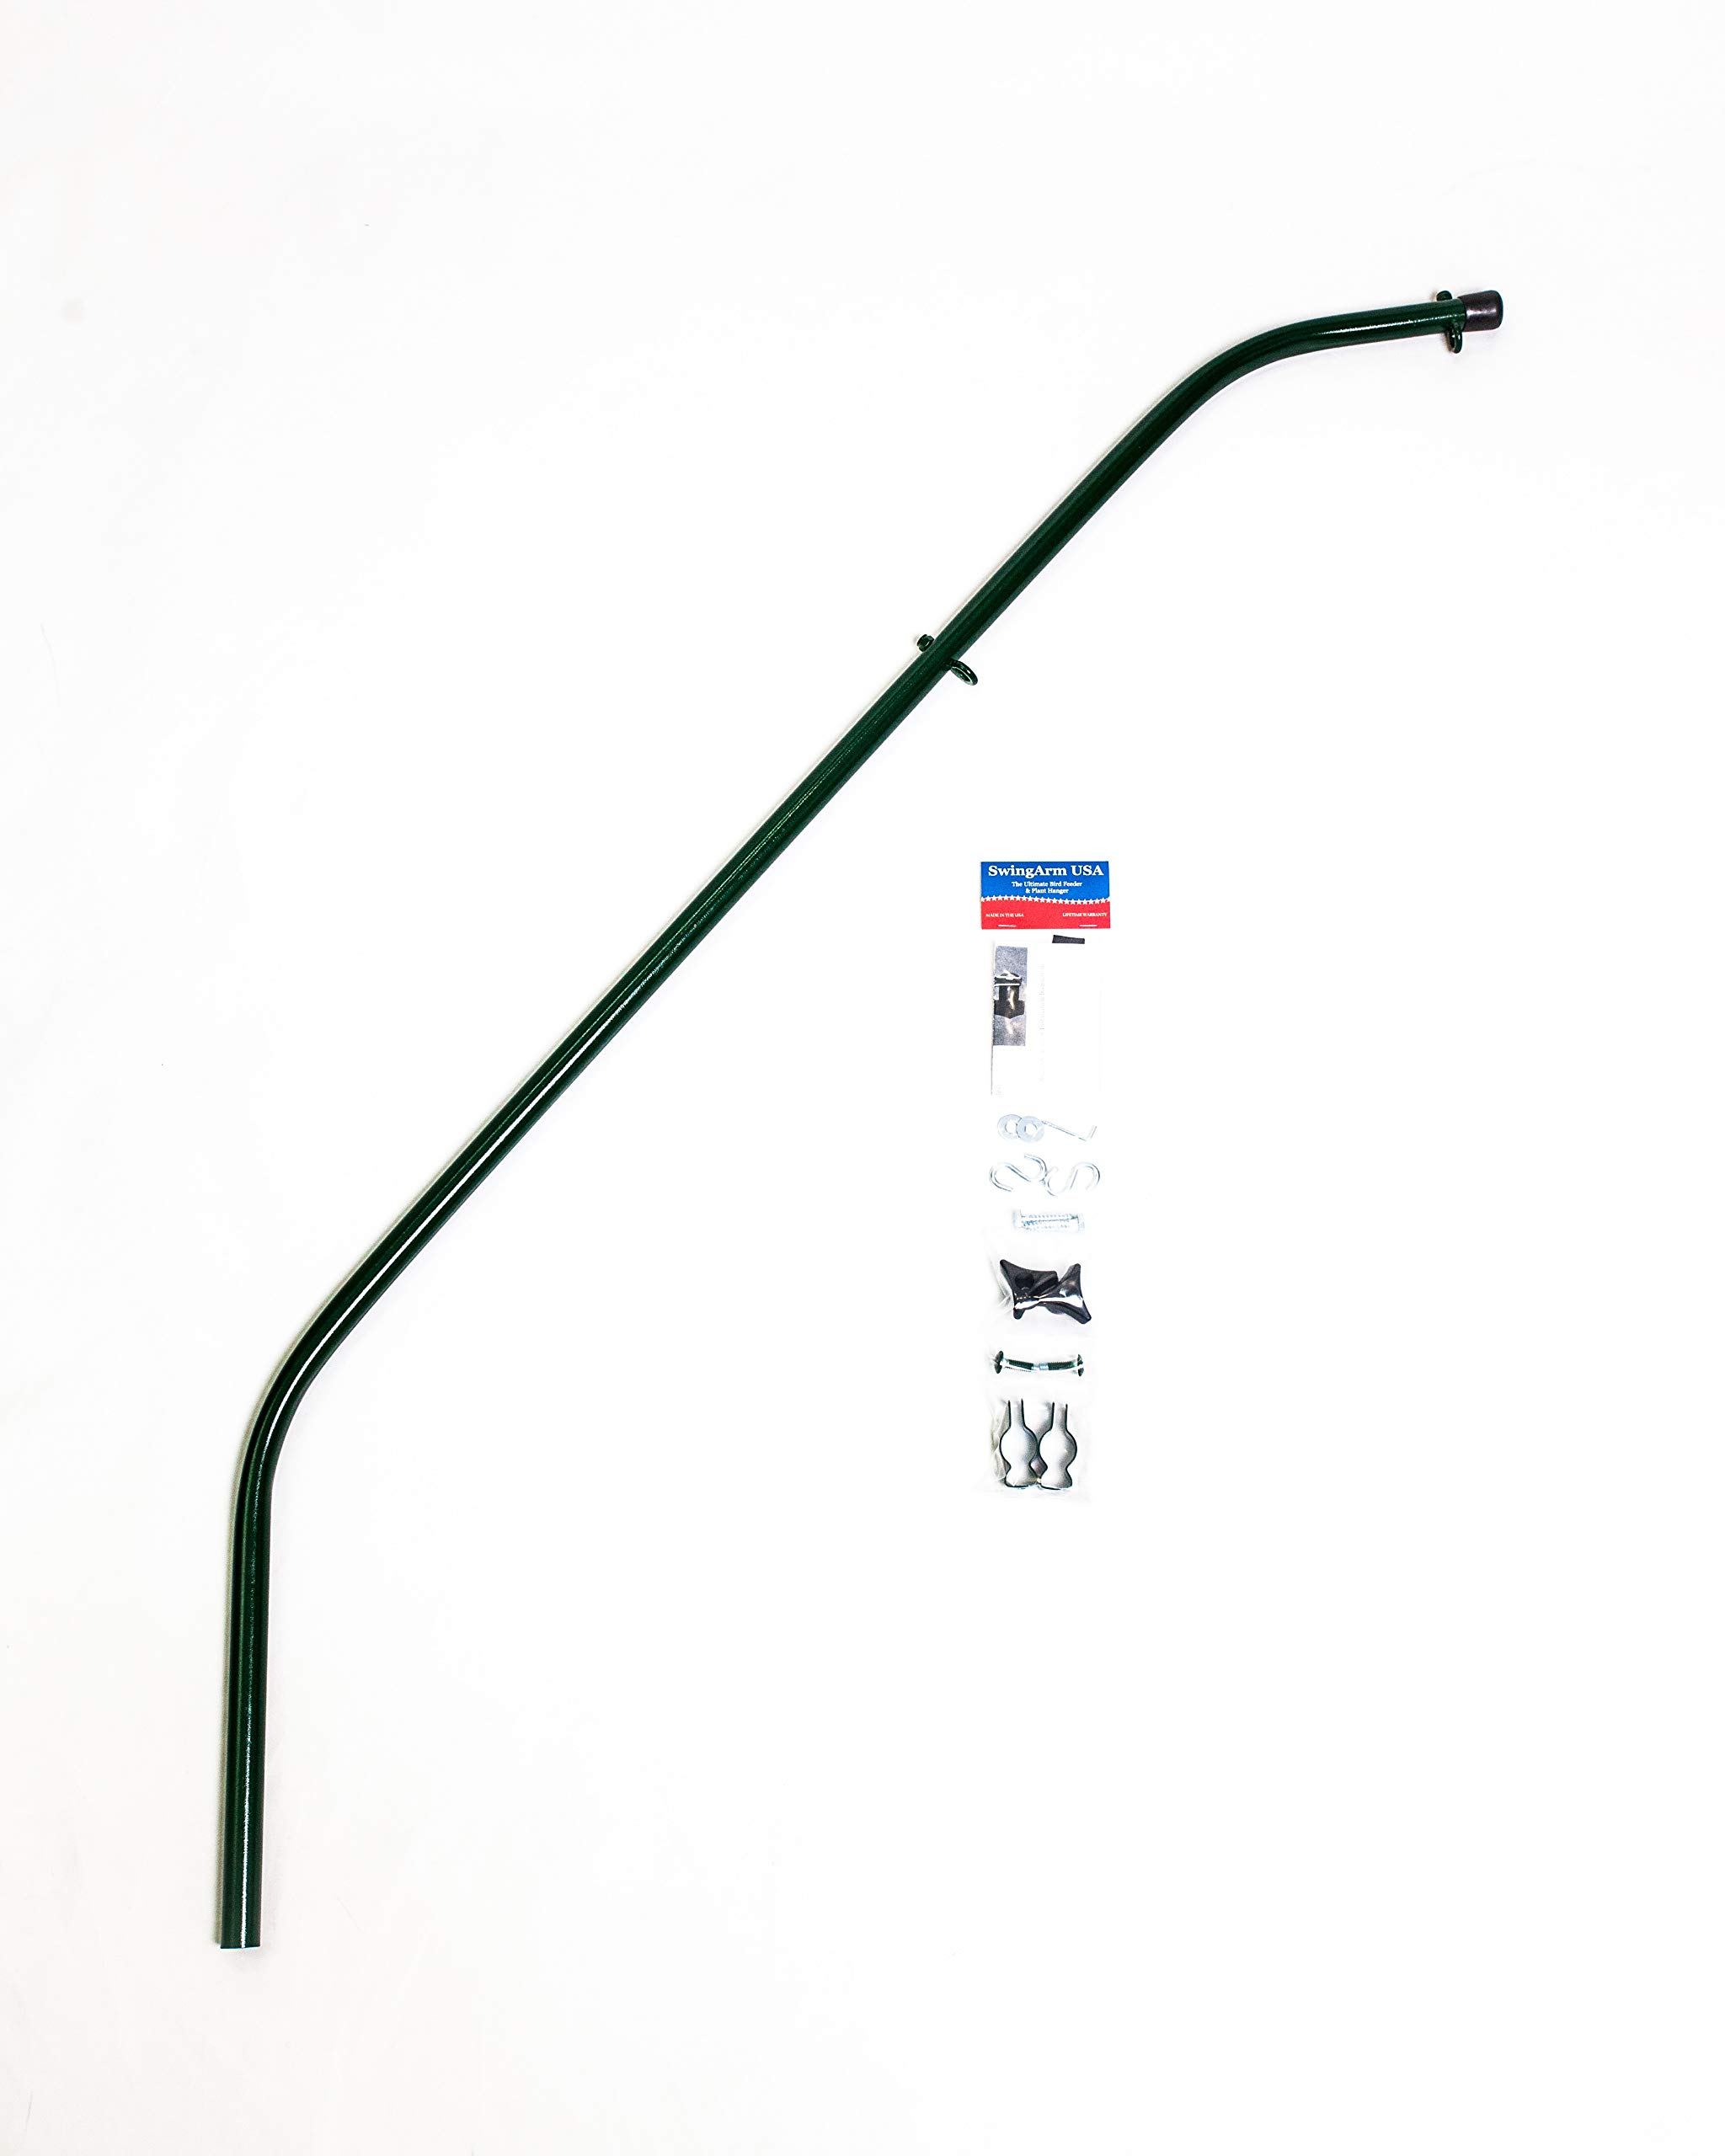 Strongest Extended Reach 60'' Double Hook Swinging Bird Feeder Pole Holds 2 Feeders! Easy Refilling & No More Messy Decks! Made in The USA (Hunter Green)